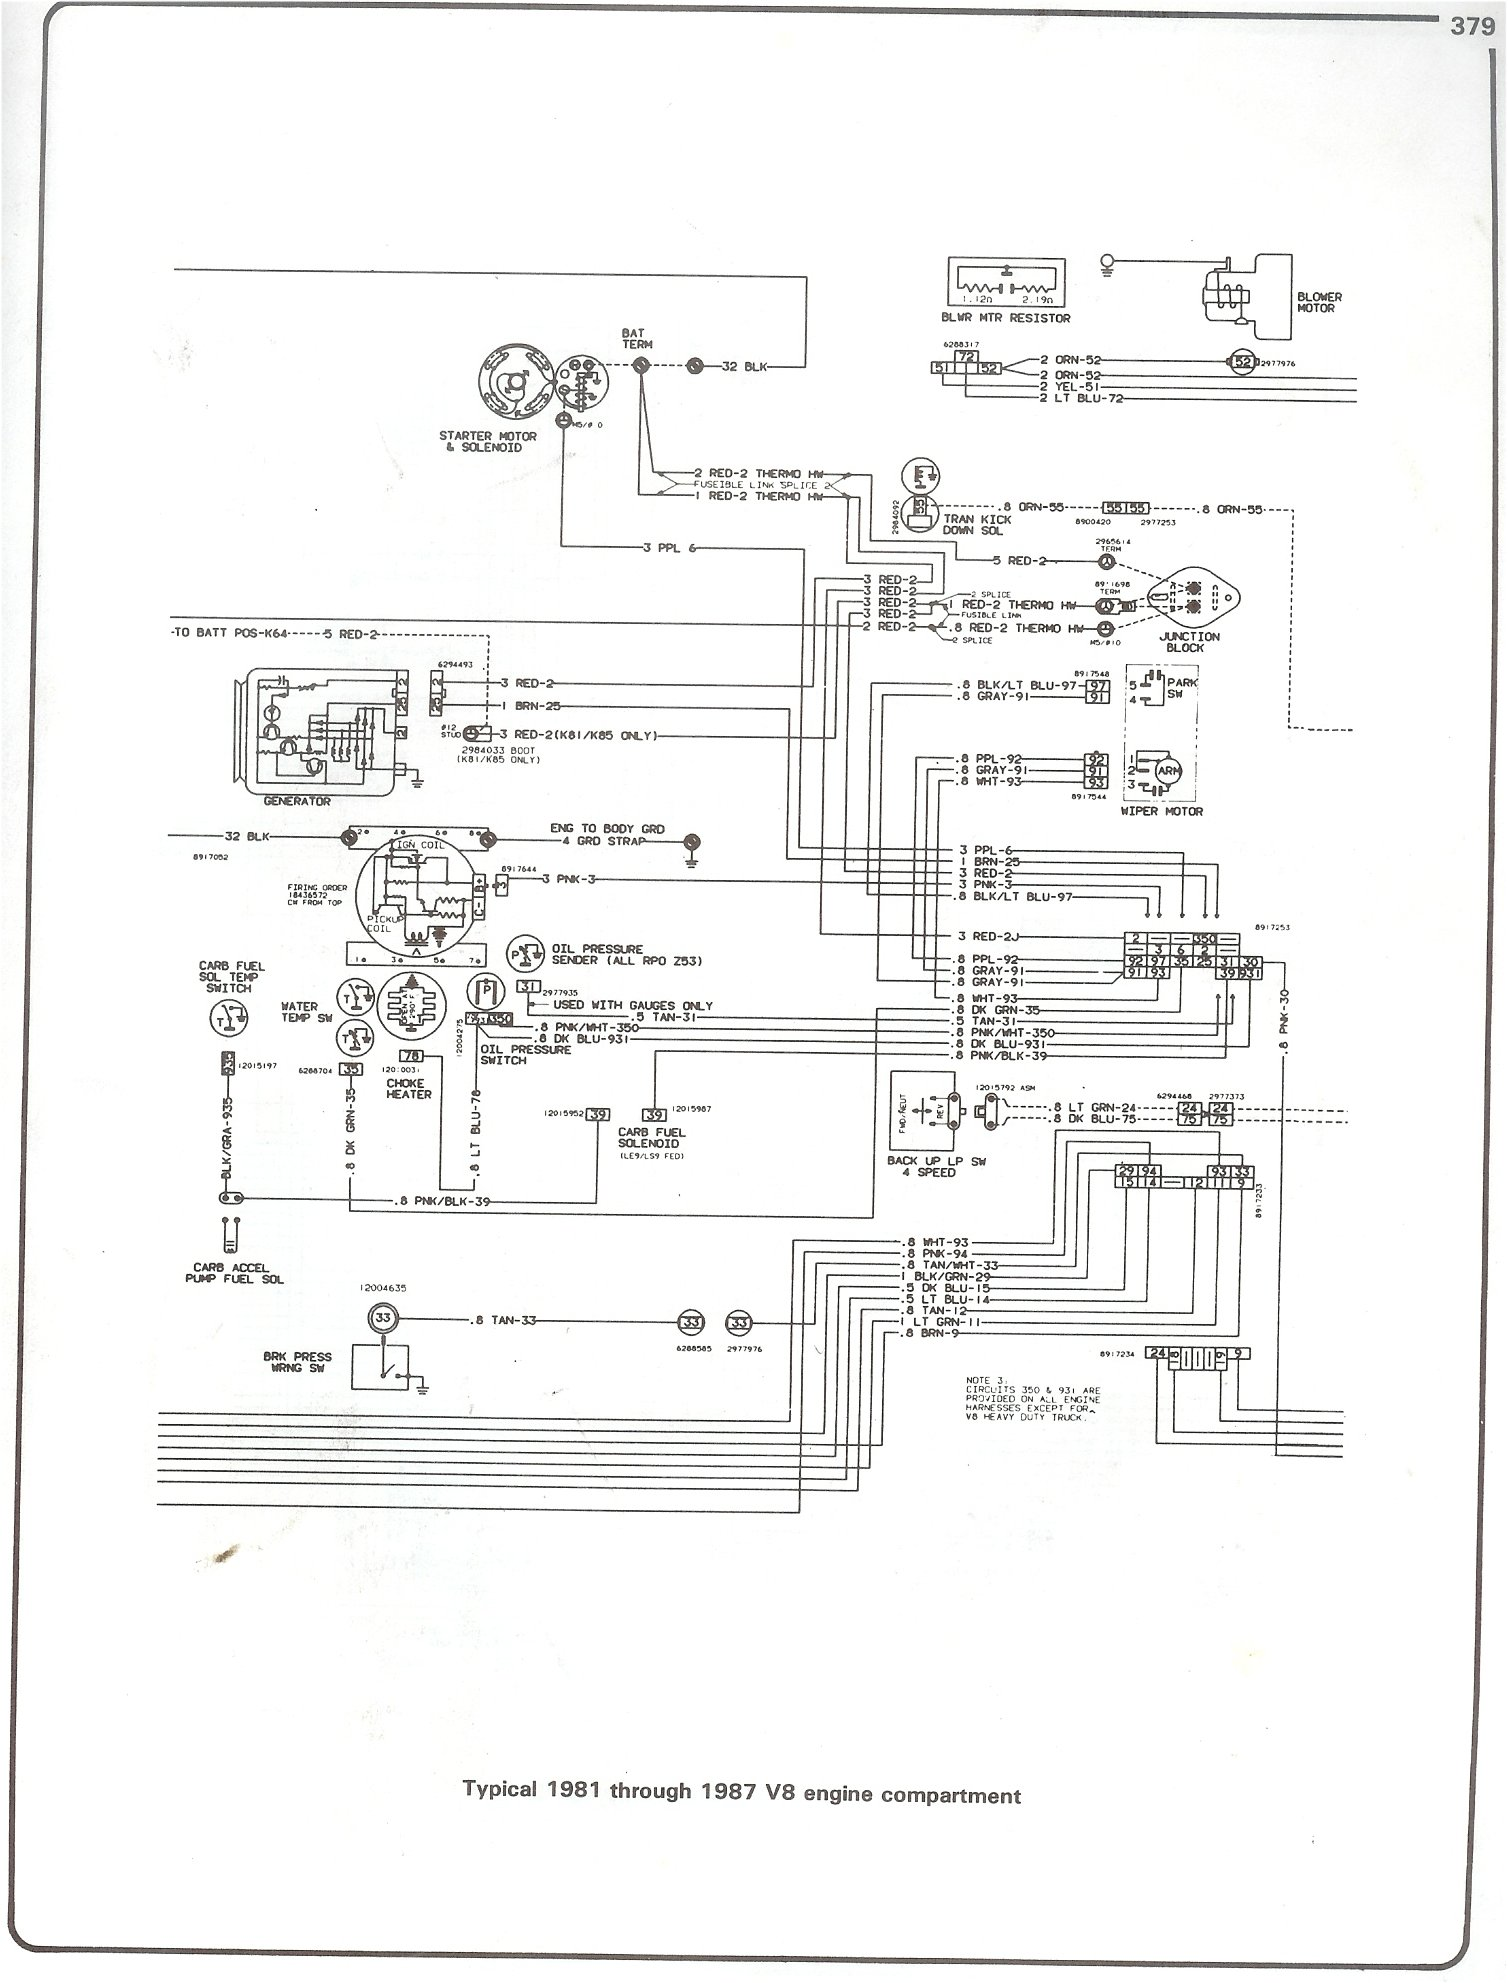 81 87_V8_engine complete 73 87 wiring diagrams chevy wiring diagrams trucks at edmiracle.co